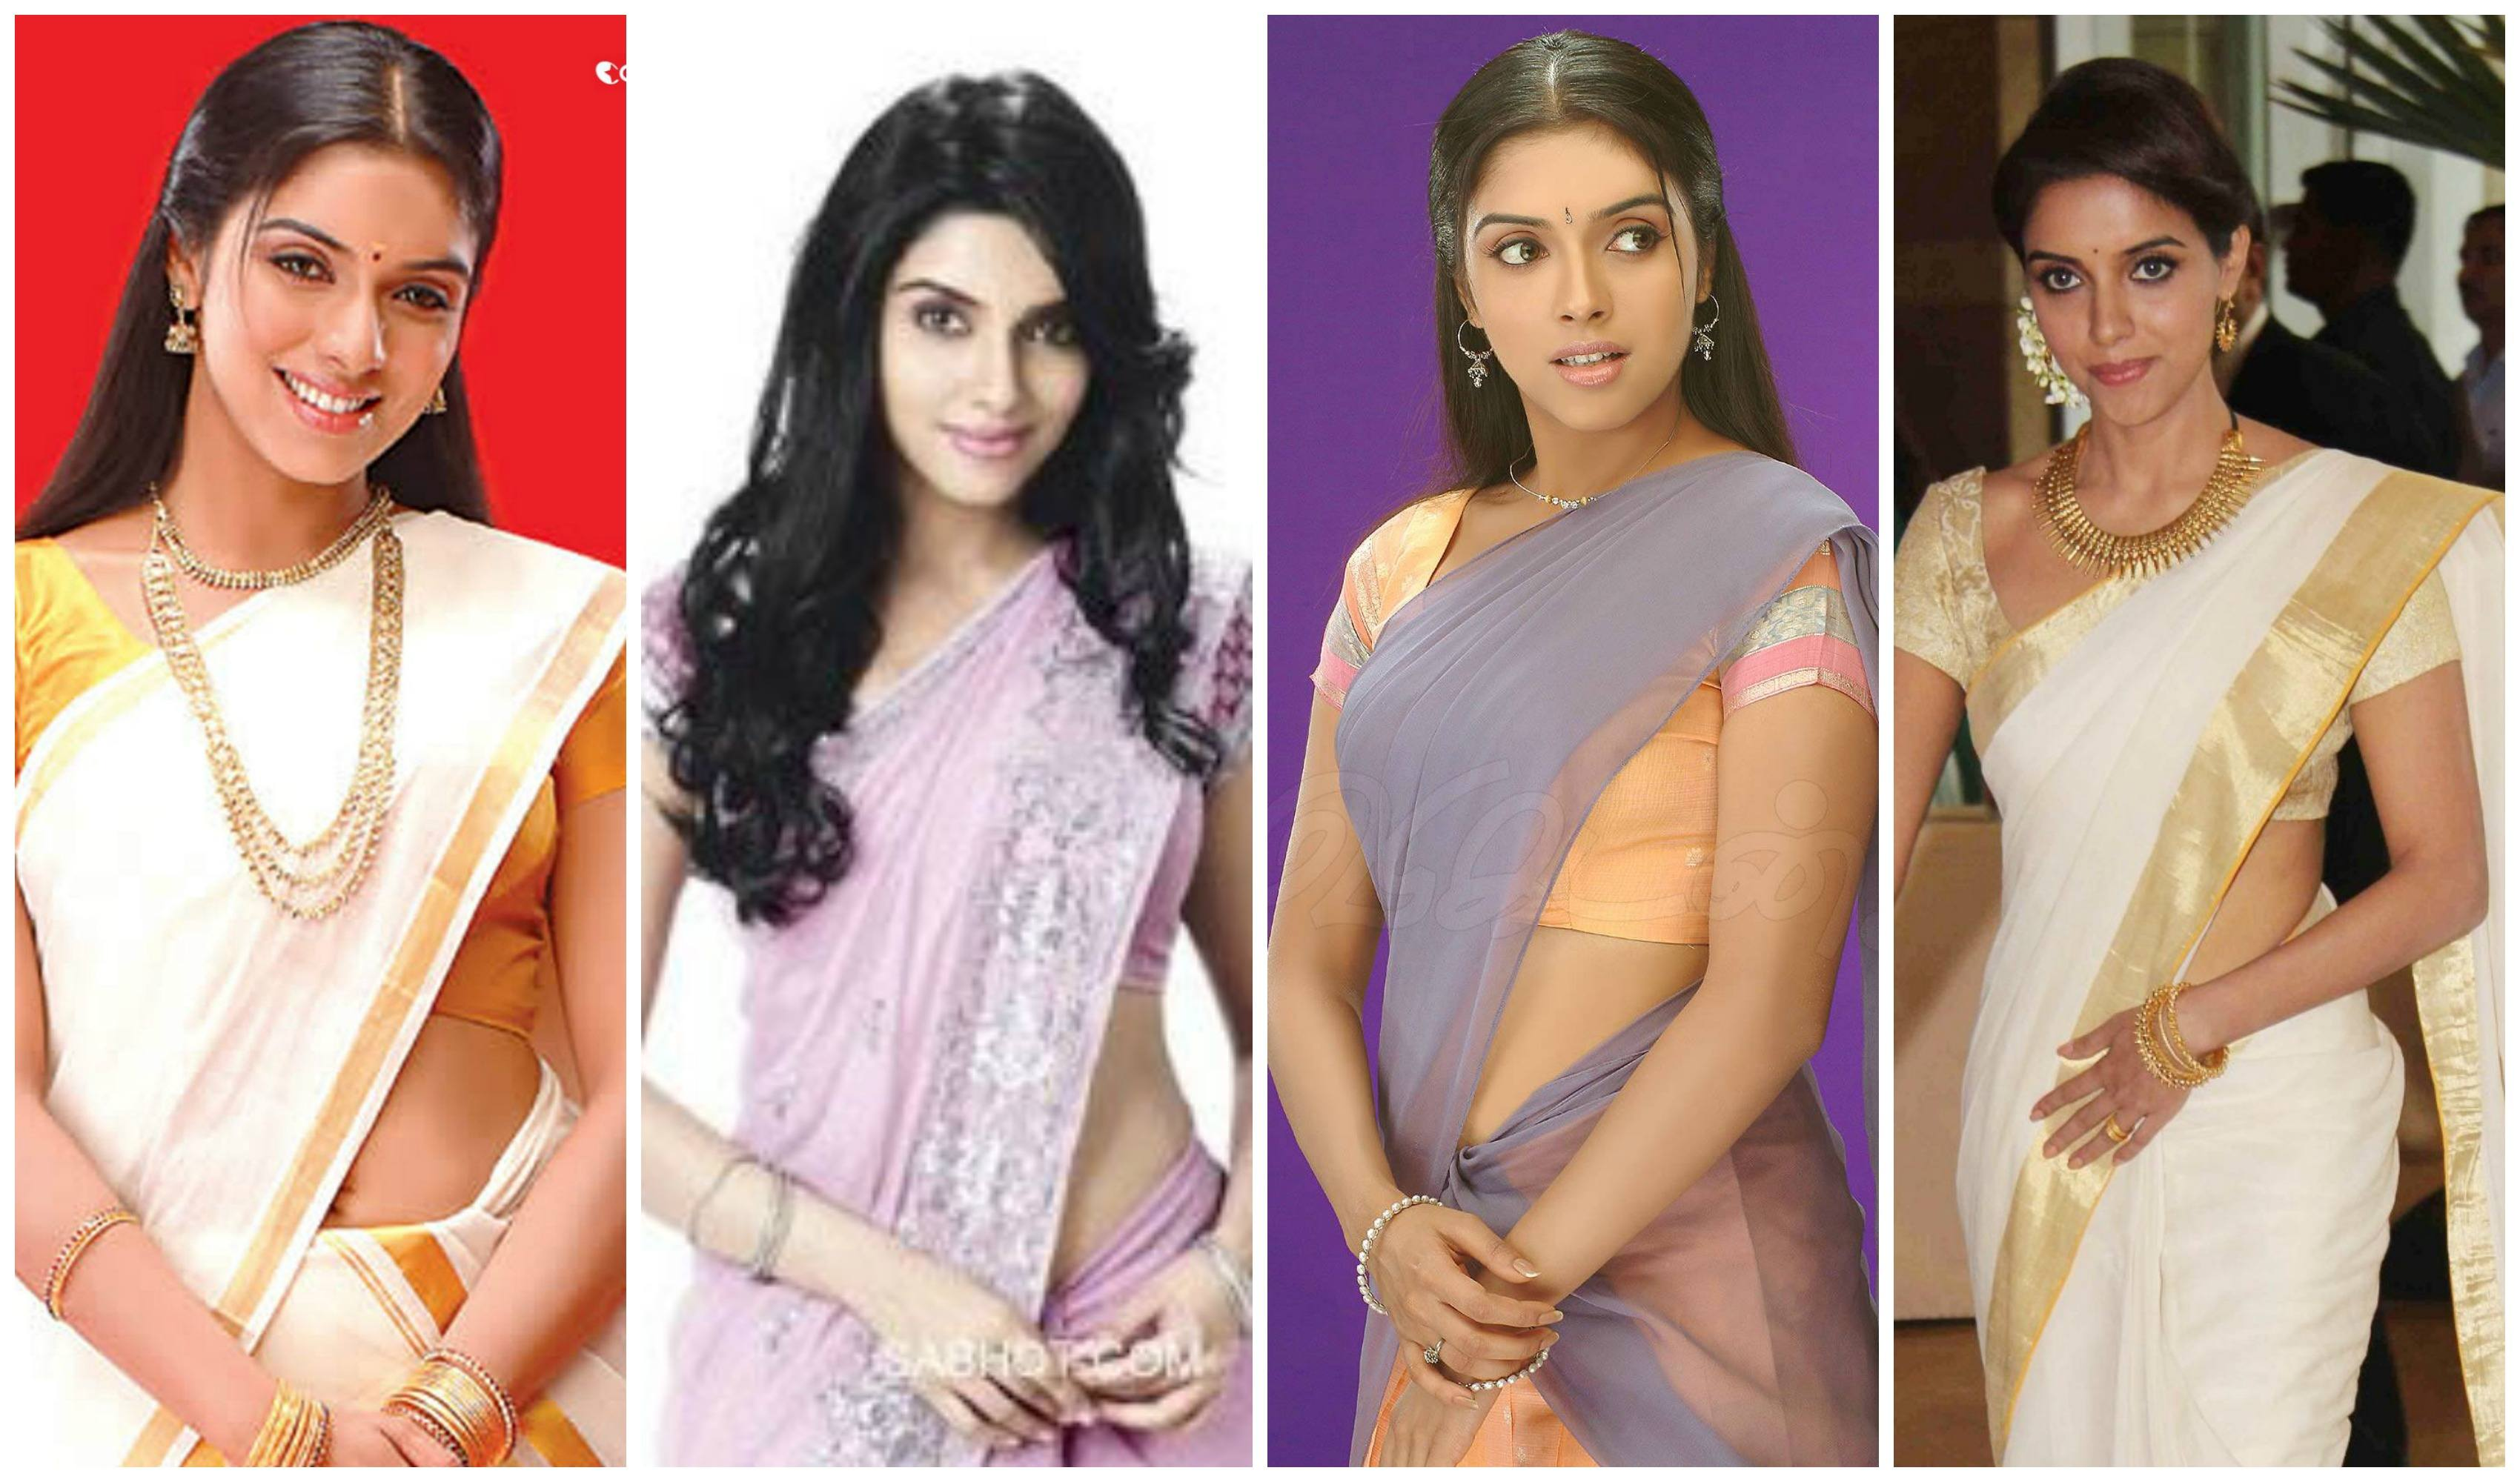 sarees-for-work-short-height-girls How to Wear Saree for Short Height? 14 Pro Tips for Short Girls